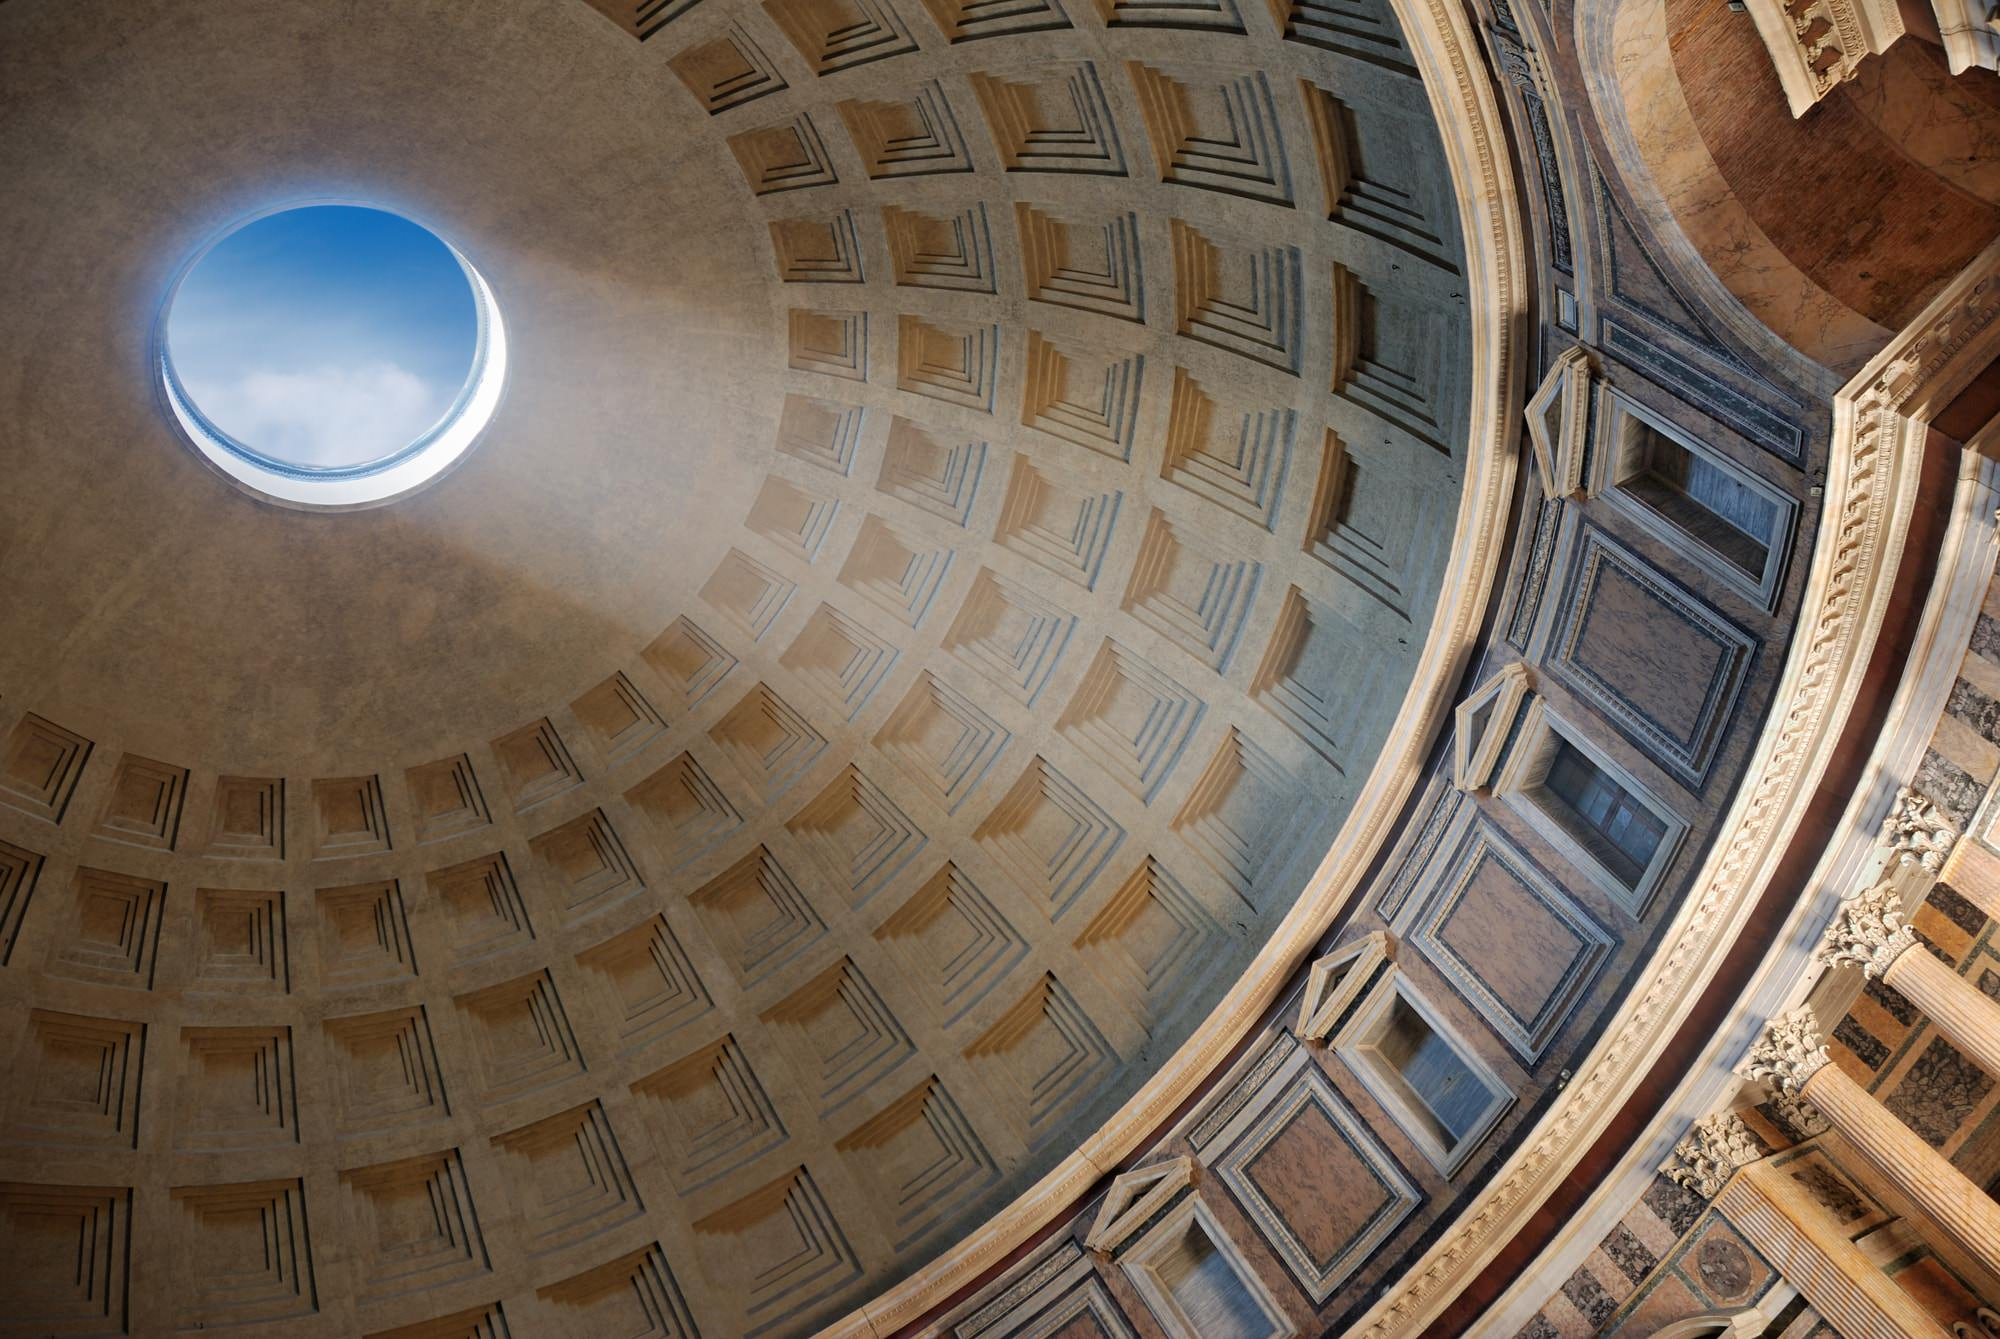 Pantheon cupola